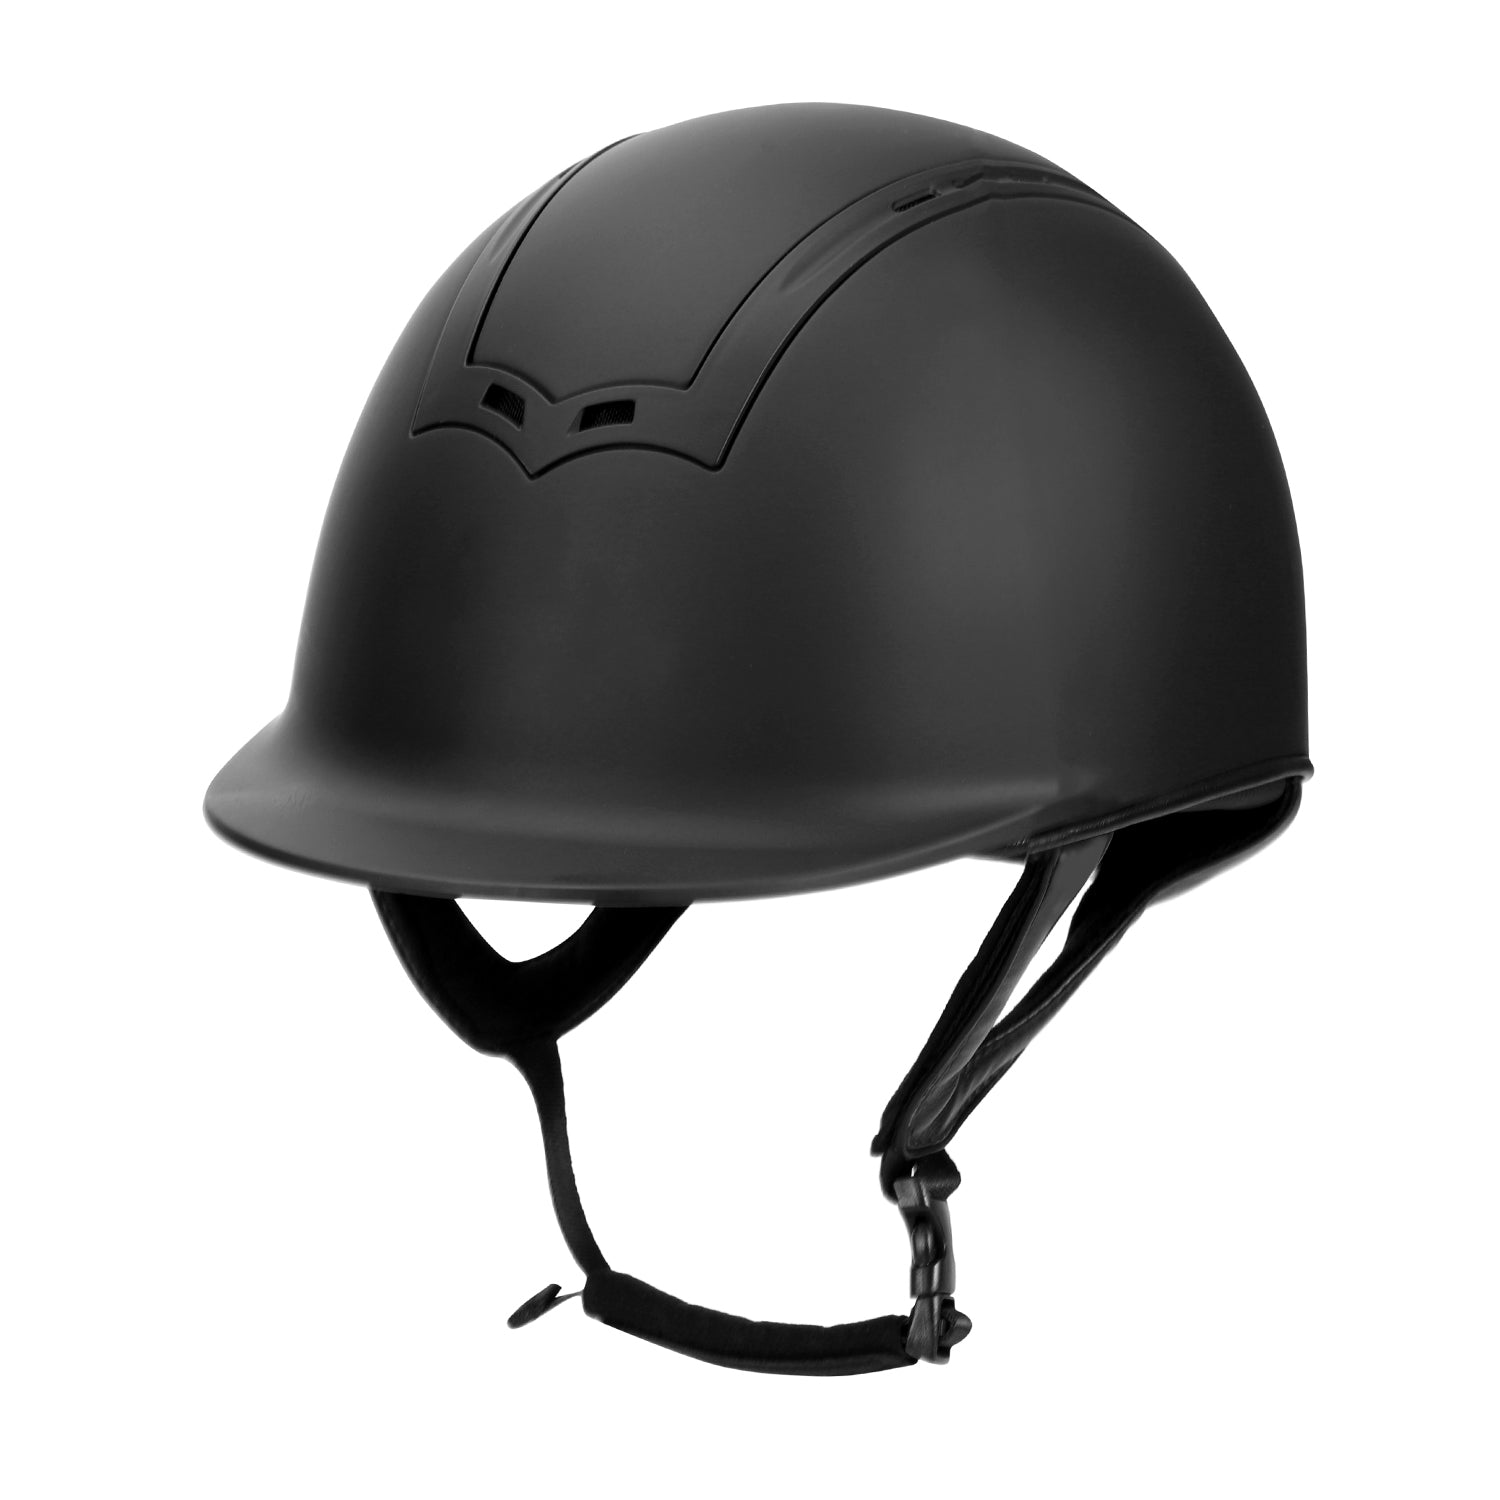 "TuffRider Show Time Helmet|Protective Head Gear for Equestrian Riders - SEI Certified, Tough and Durable - Black"" - TuffRider - Breeches.com"